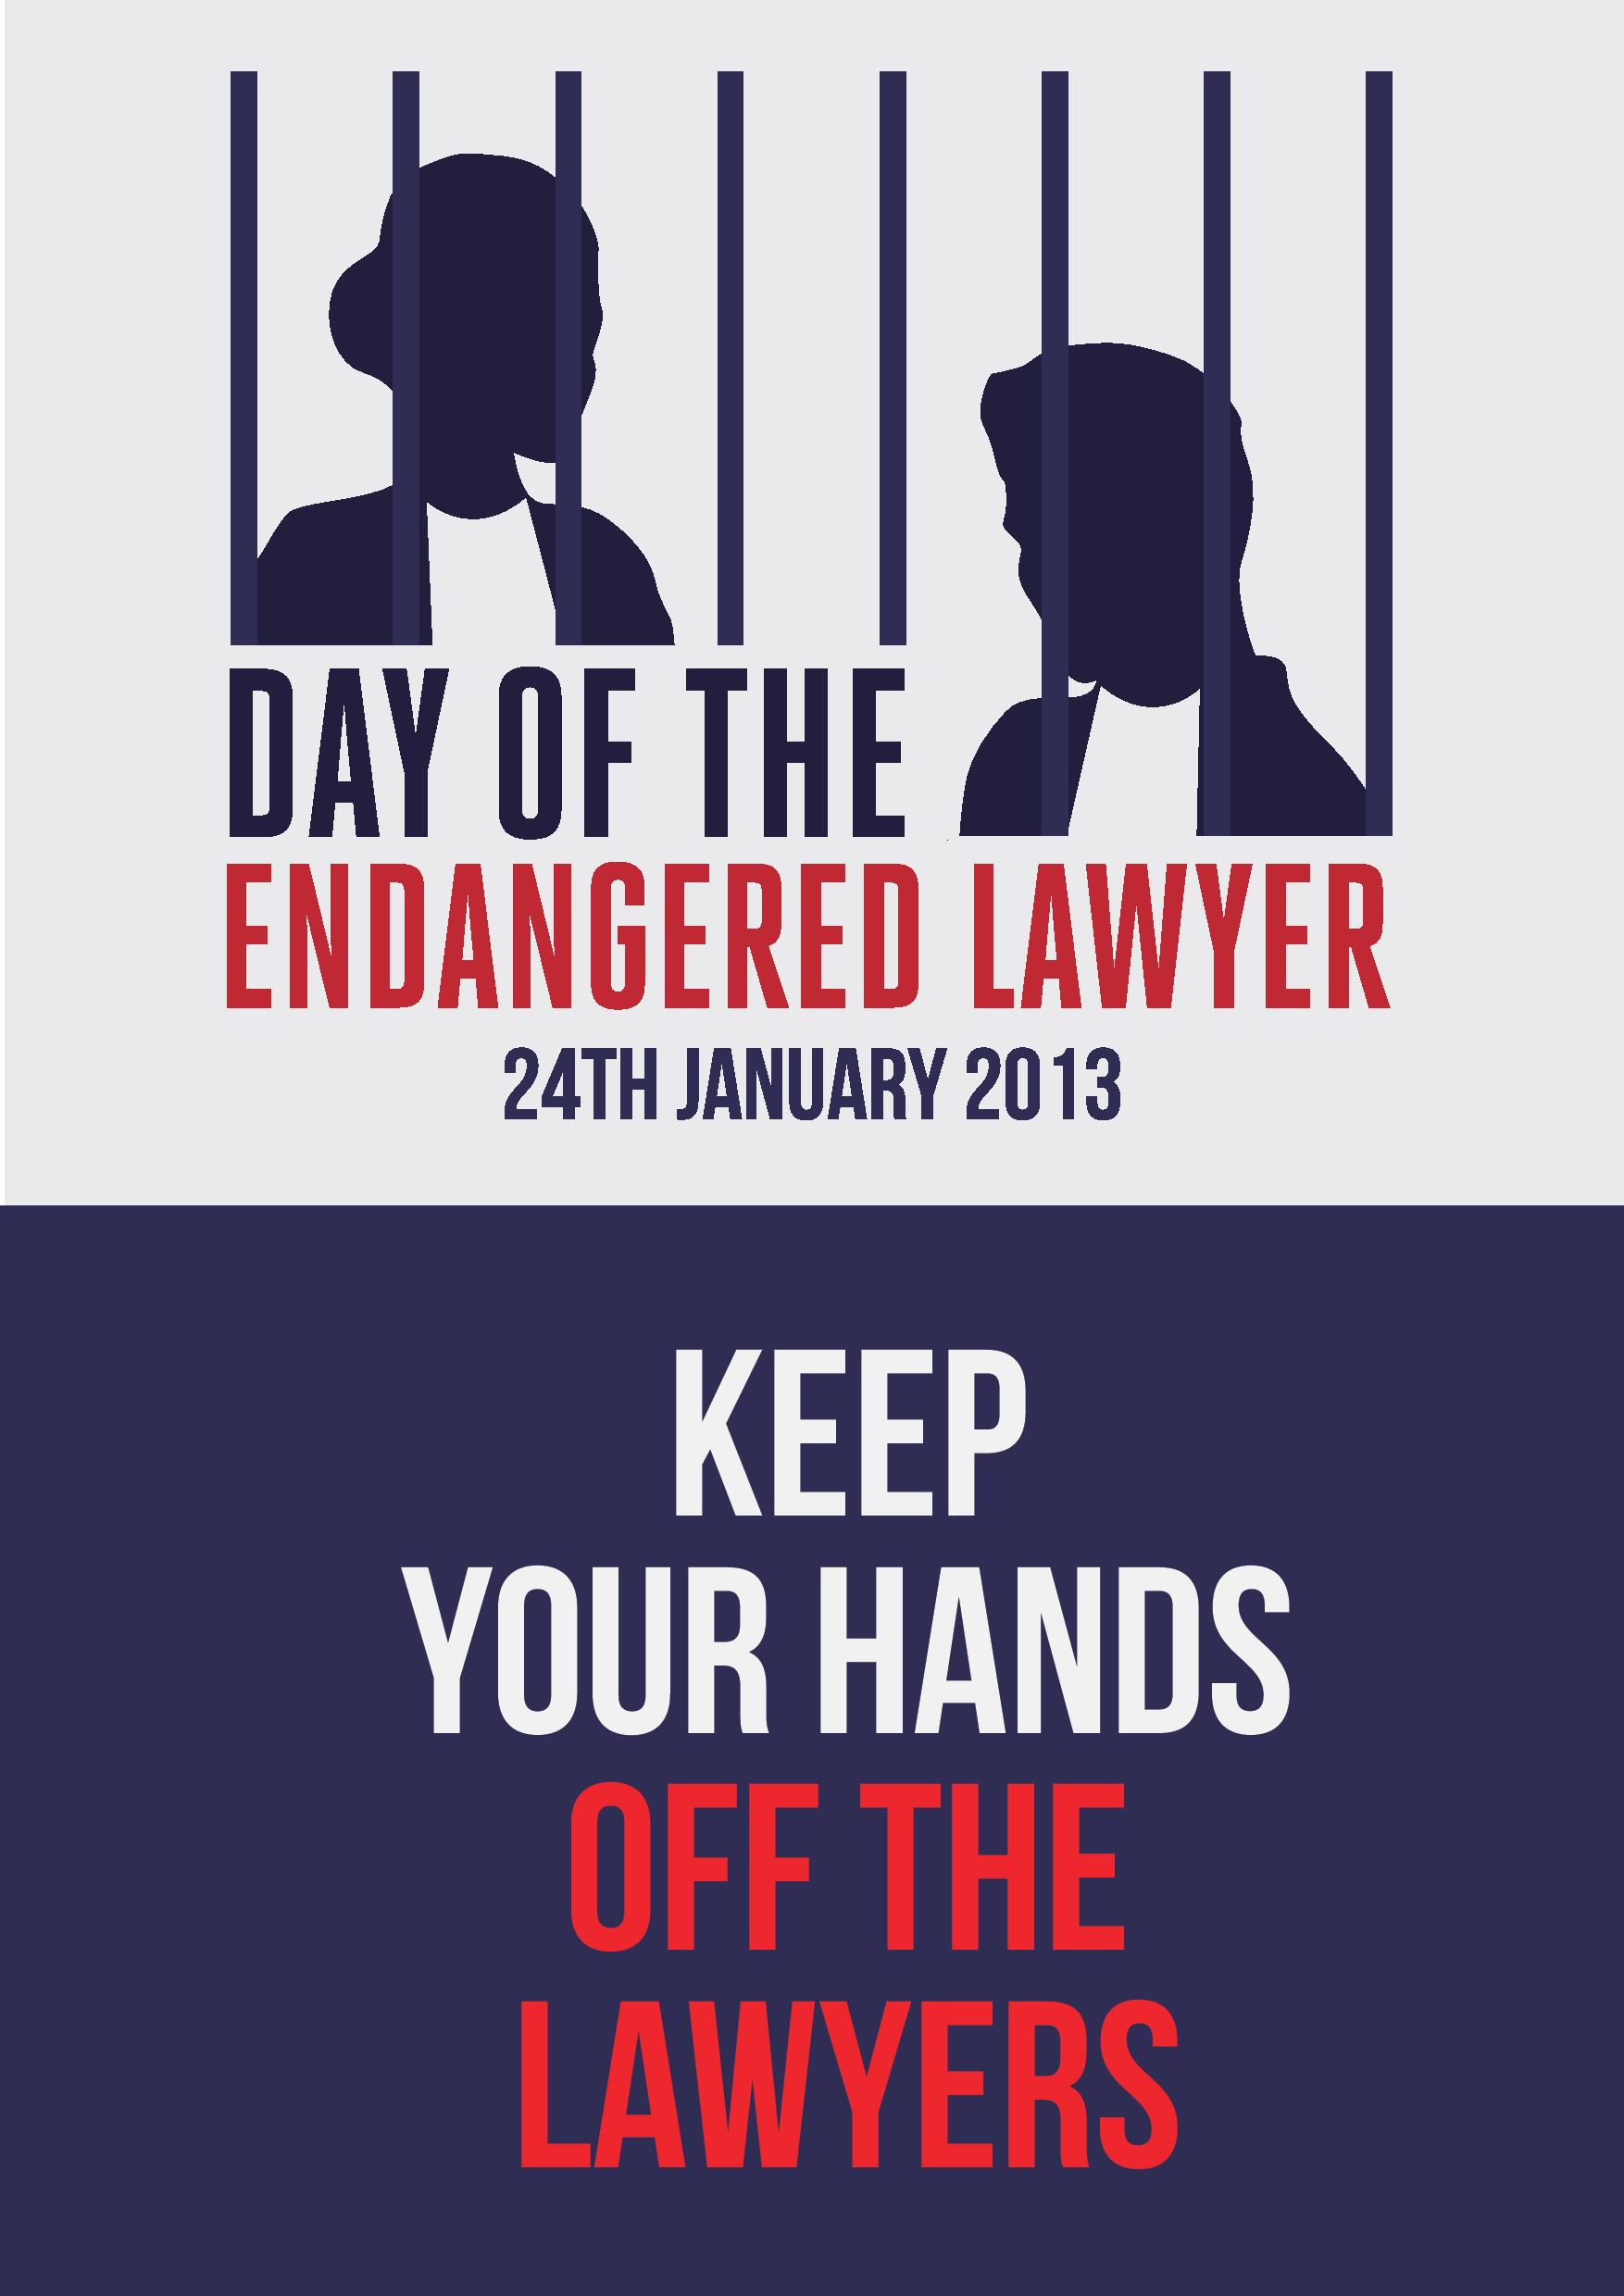 """The image in this article is a picture of one male and one female lawyer behind bars. The text reads, """"Day of the Endangered Lawyer. 24th January 2013. Keep your hands off the lawyers""""."""